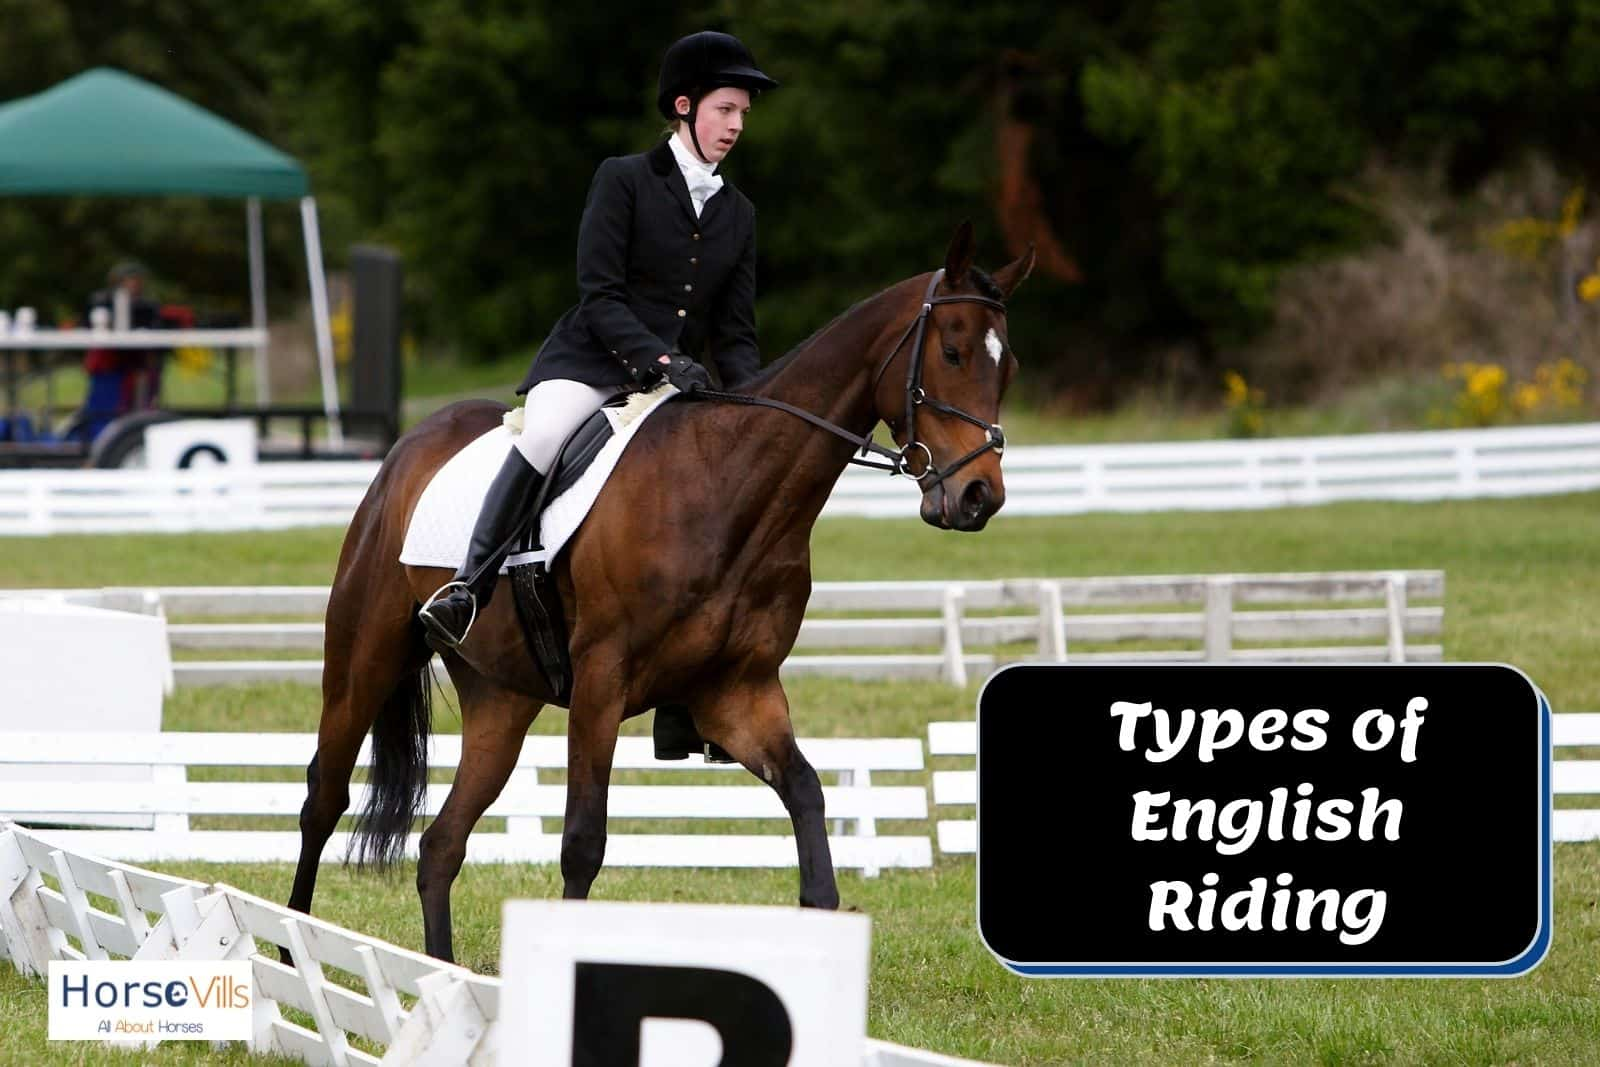 a man and his horse in a dressage event